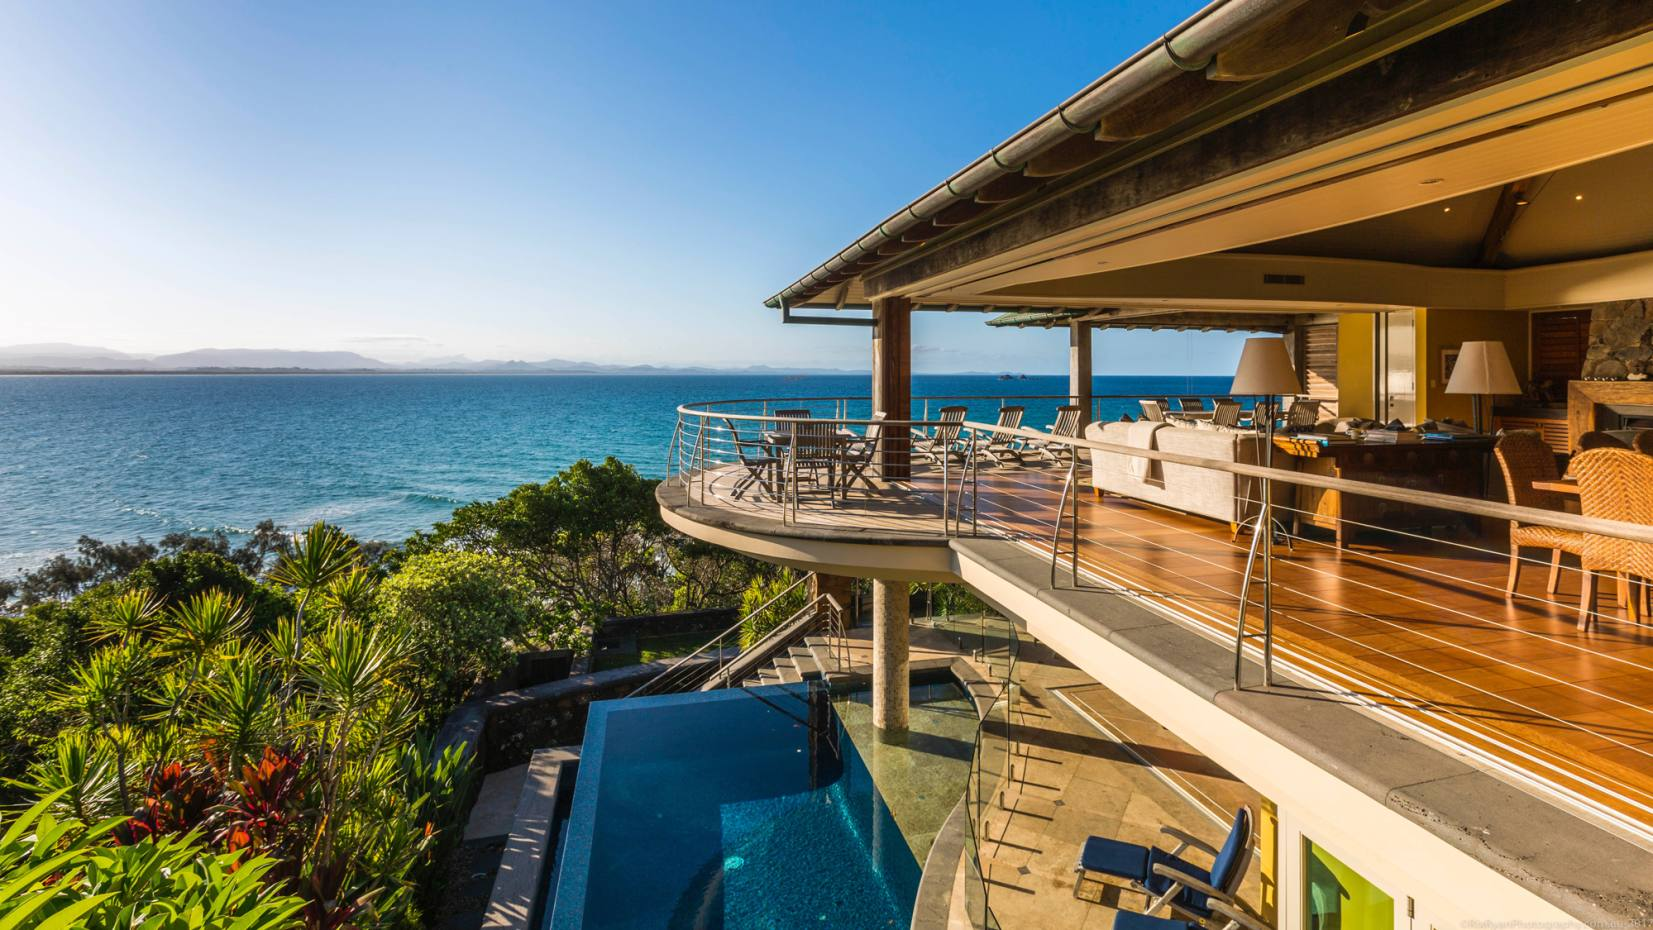 The state-of-the-art, four-bedroom Amangani villa in Australia's Byron Bay, from $2,000 per night